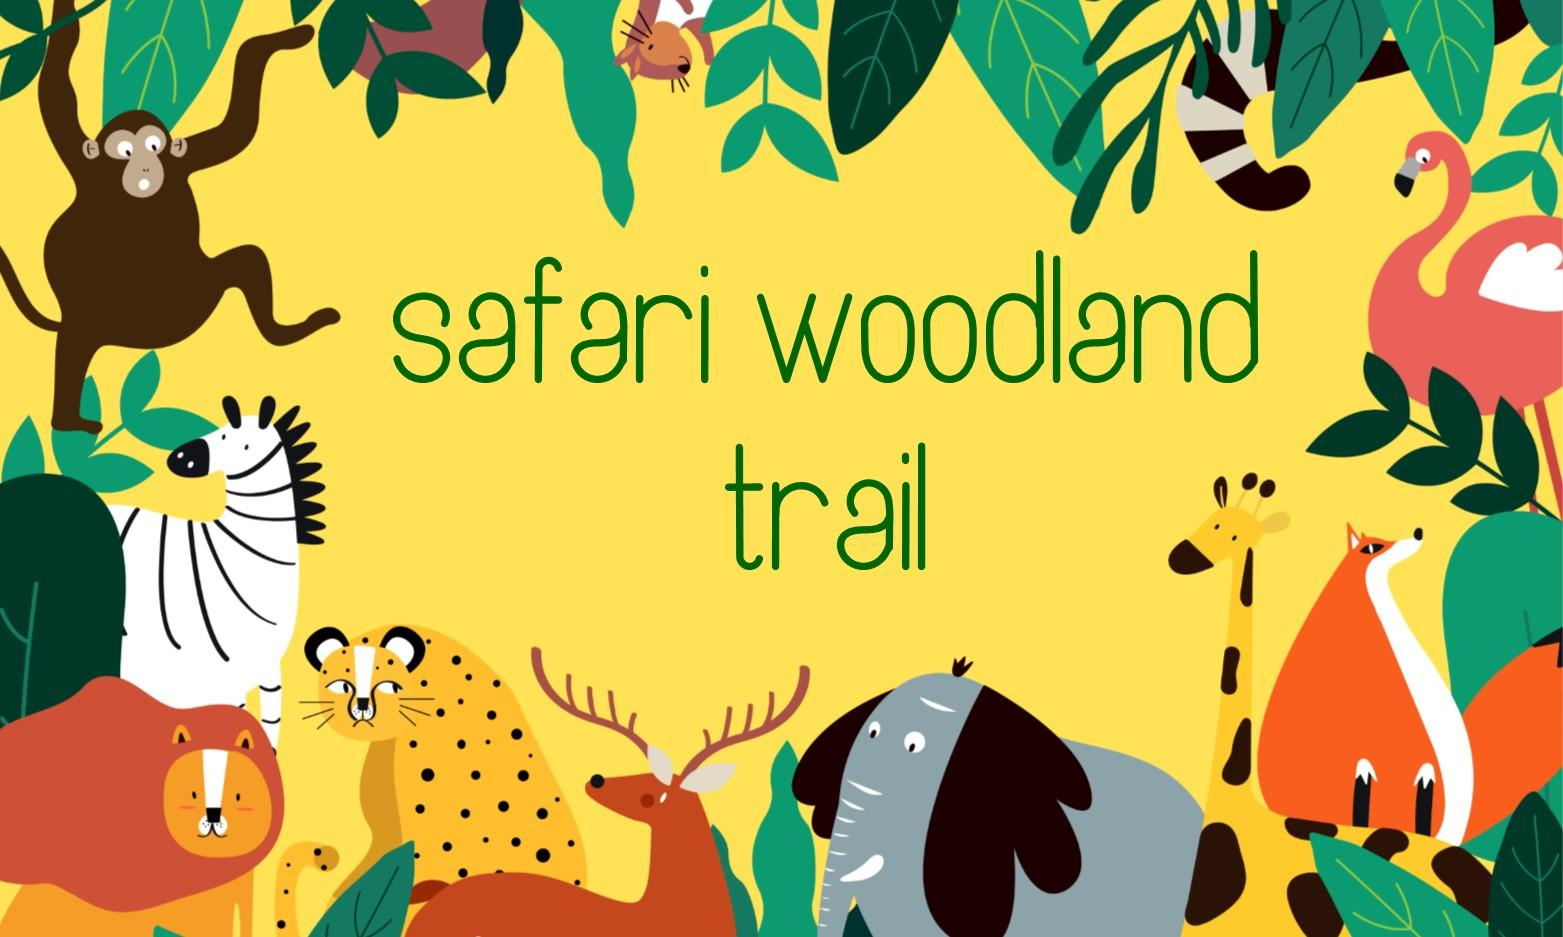 Safari Woodland Trail at RSPCA Llys Nini in Swansea